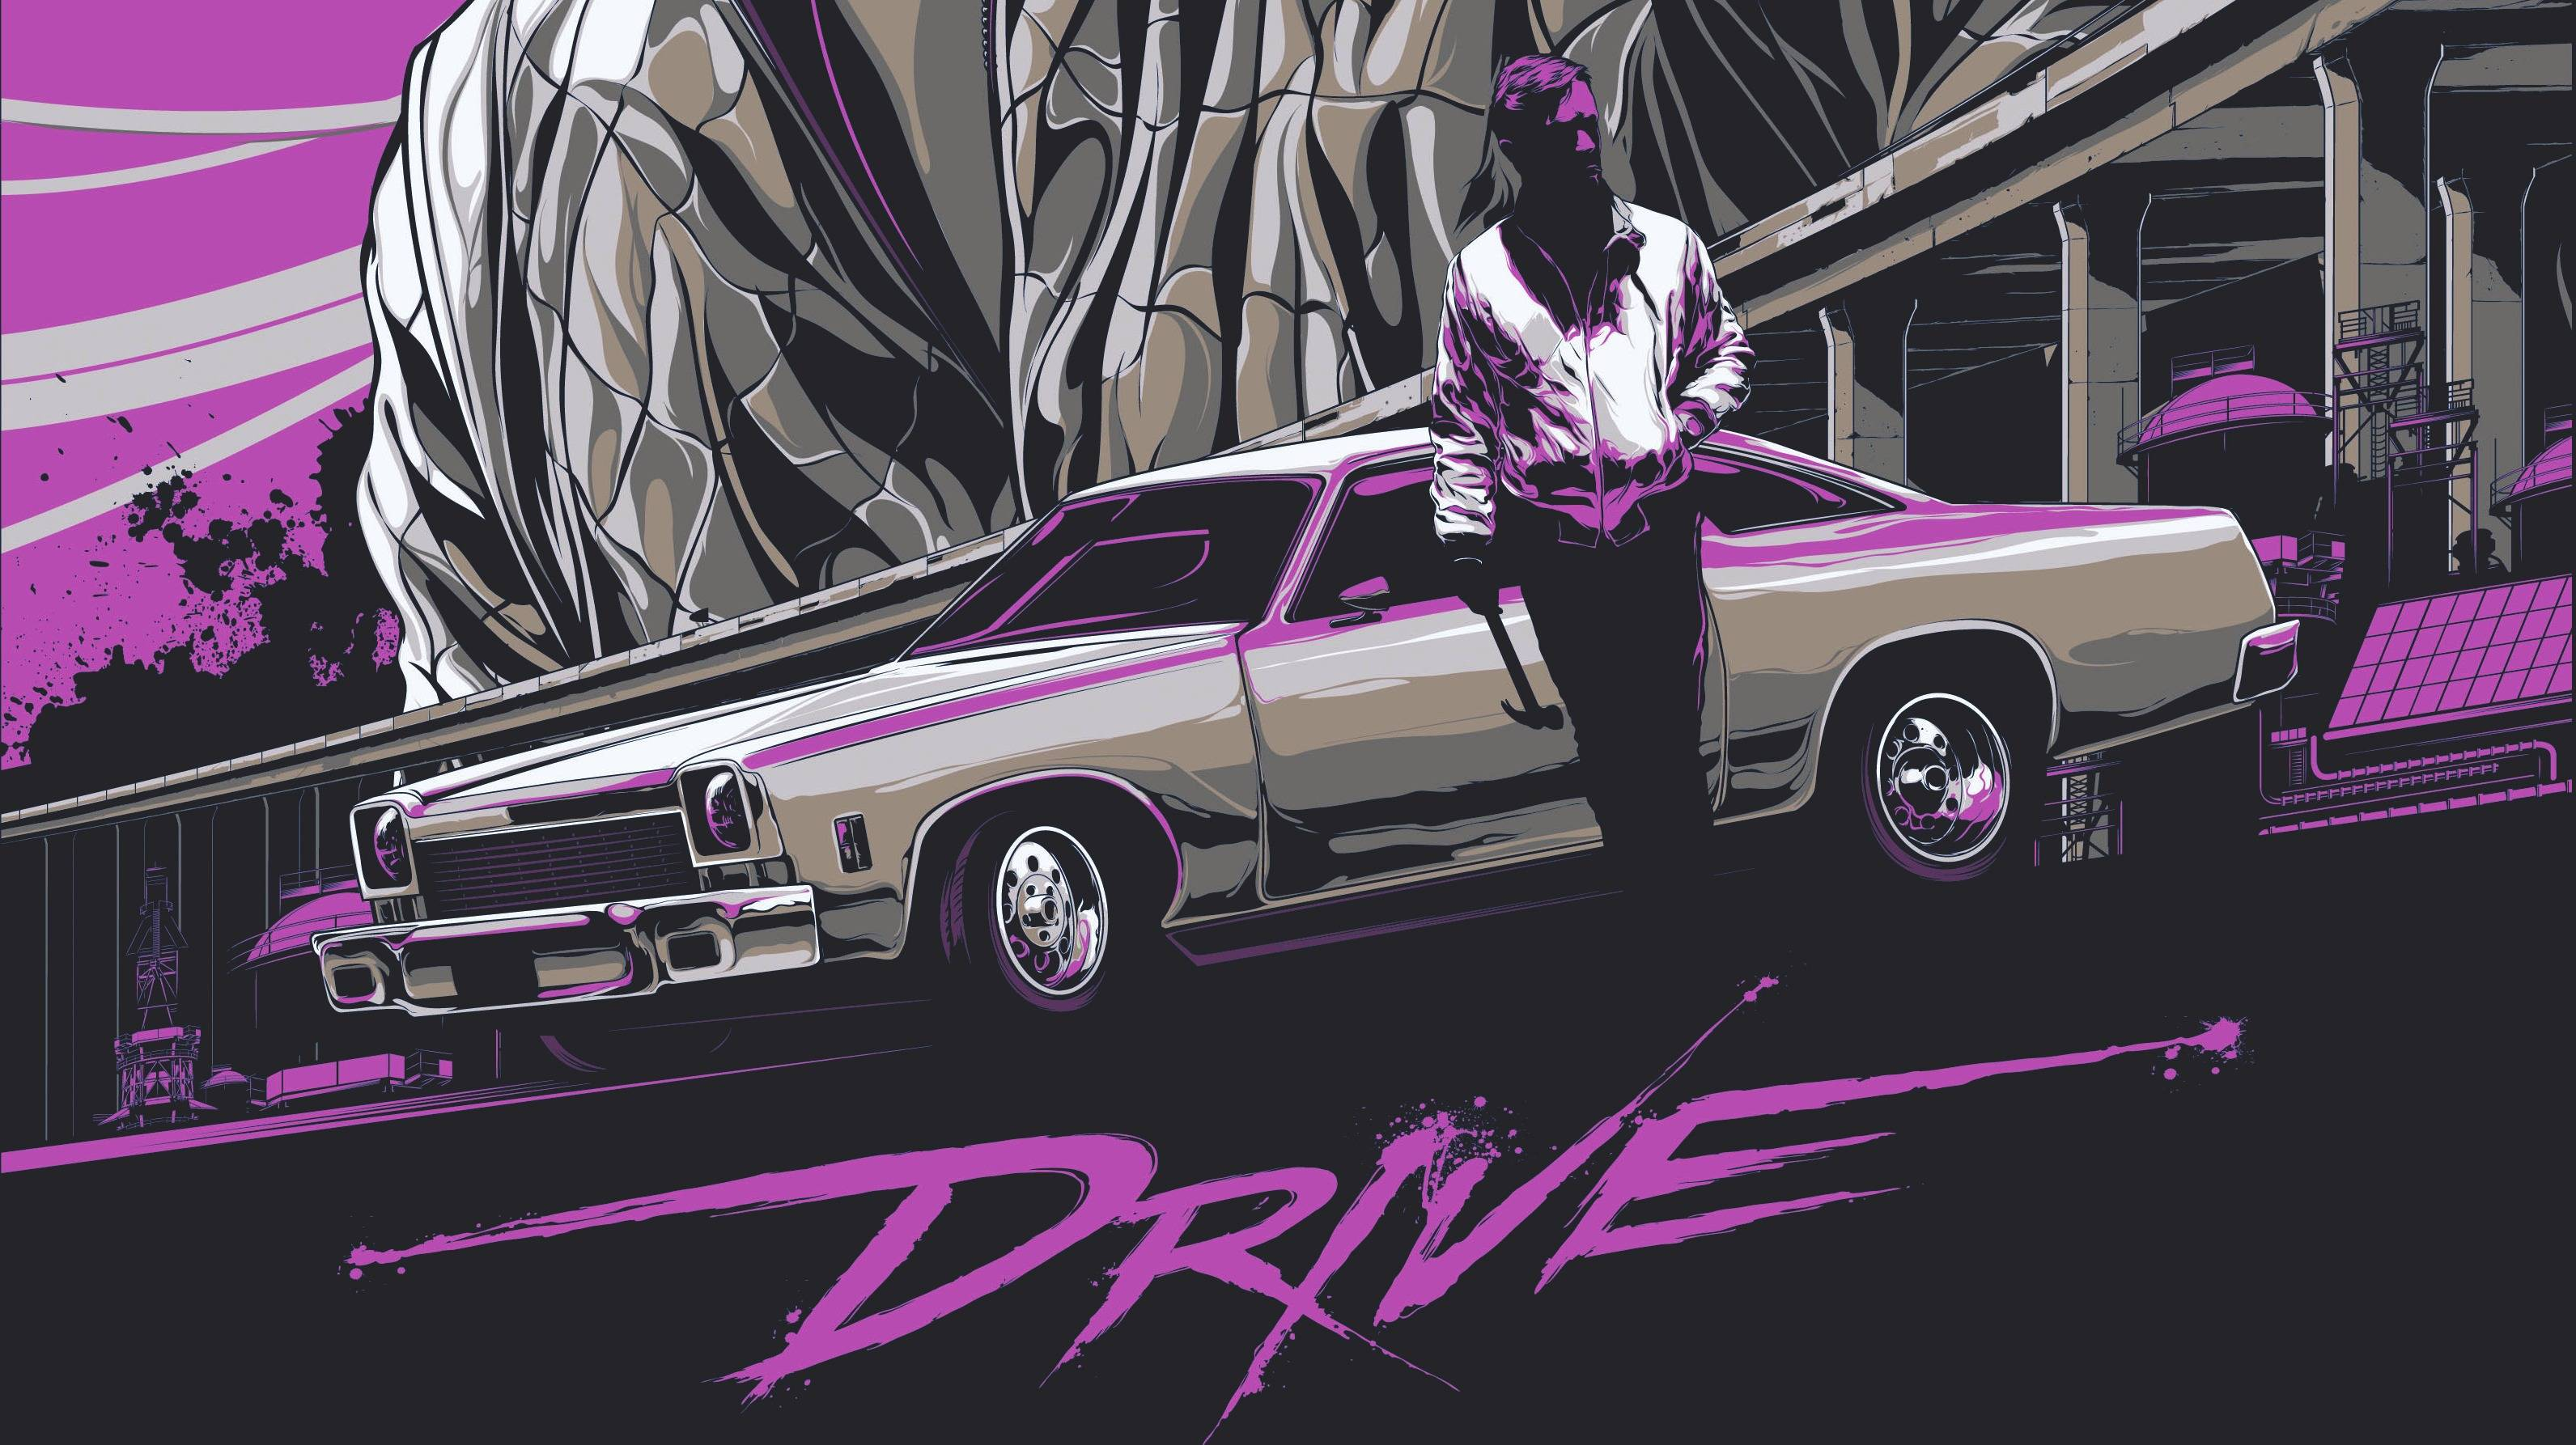 drive movie wallpaper images - photo #9